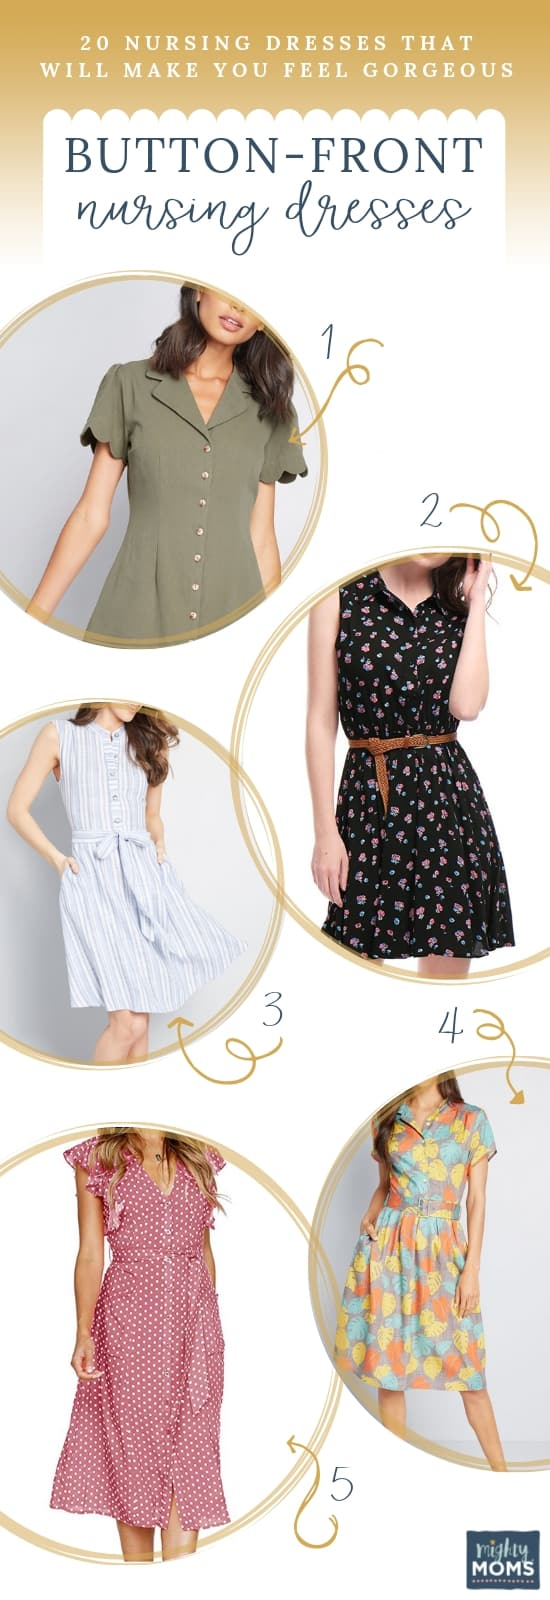 Nursing Dresses: Go with Buttons - MightyMoms.club